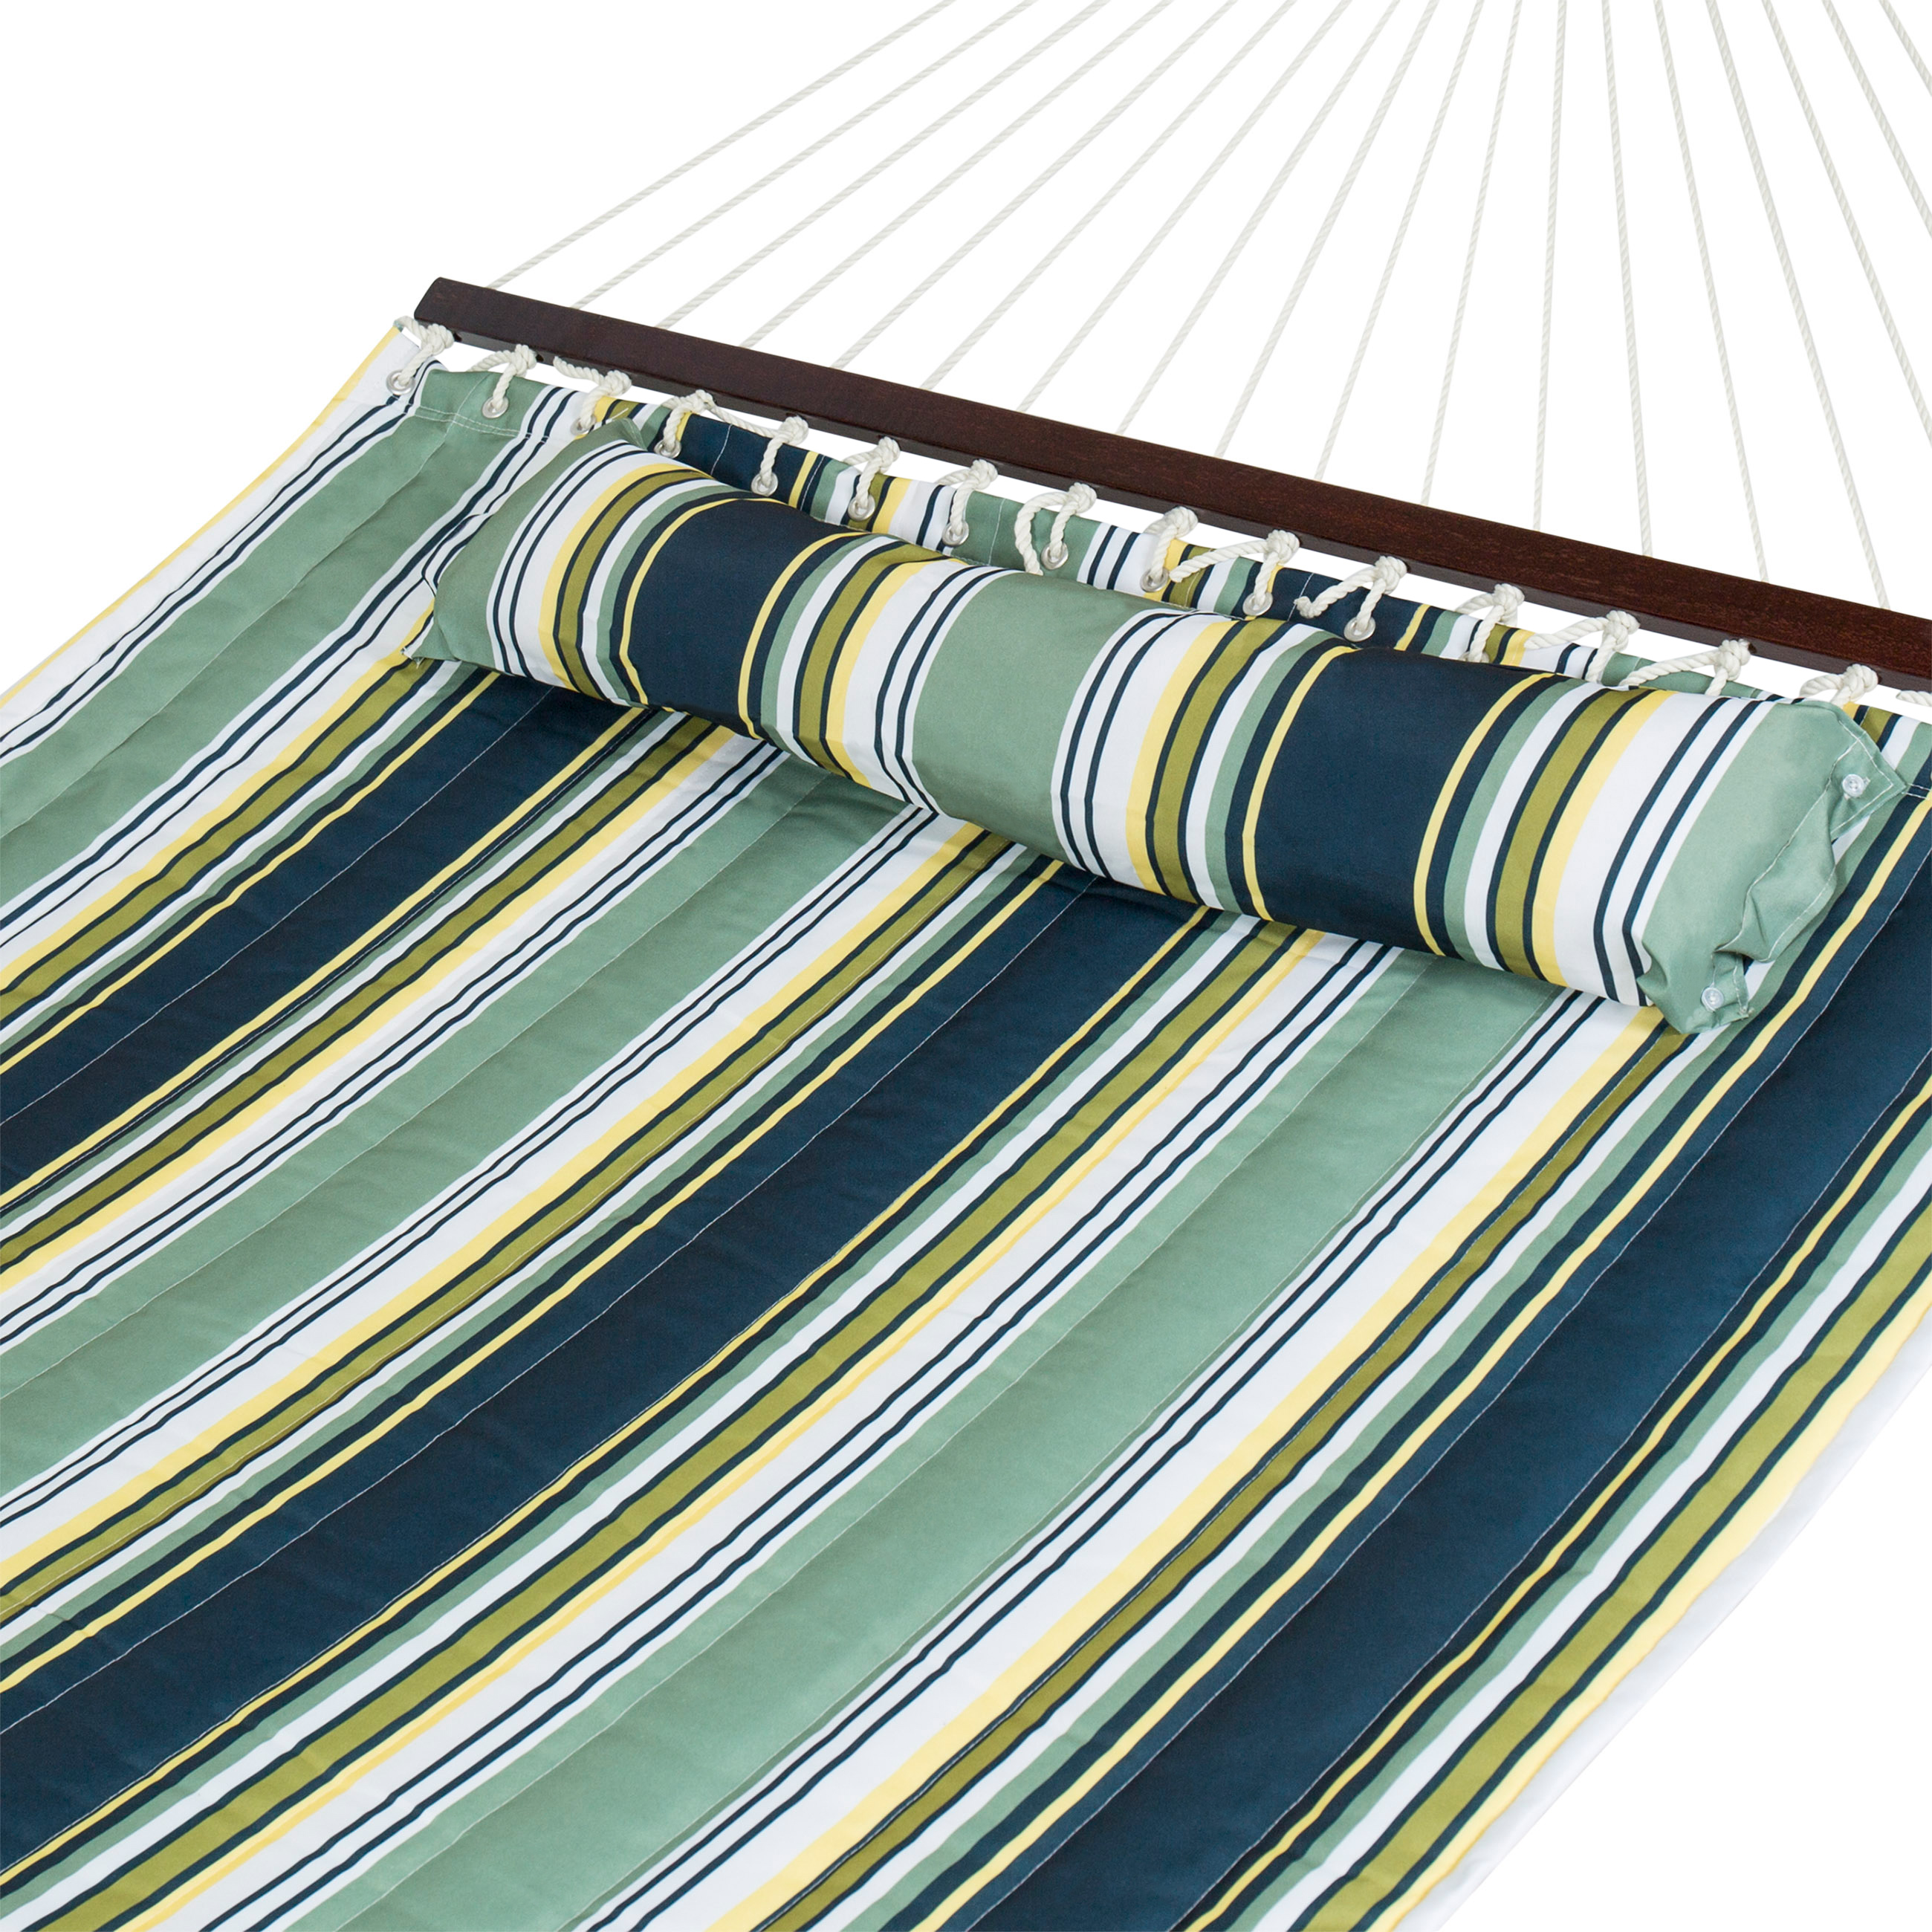 Best Choice Products Quilted Double Hammock w  Detachable Pillow, Spreader Bar Navy Blue and Teal Stripe by Best Choice Products